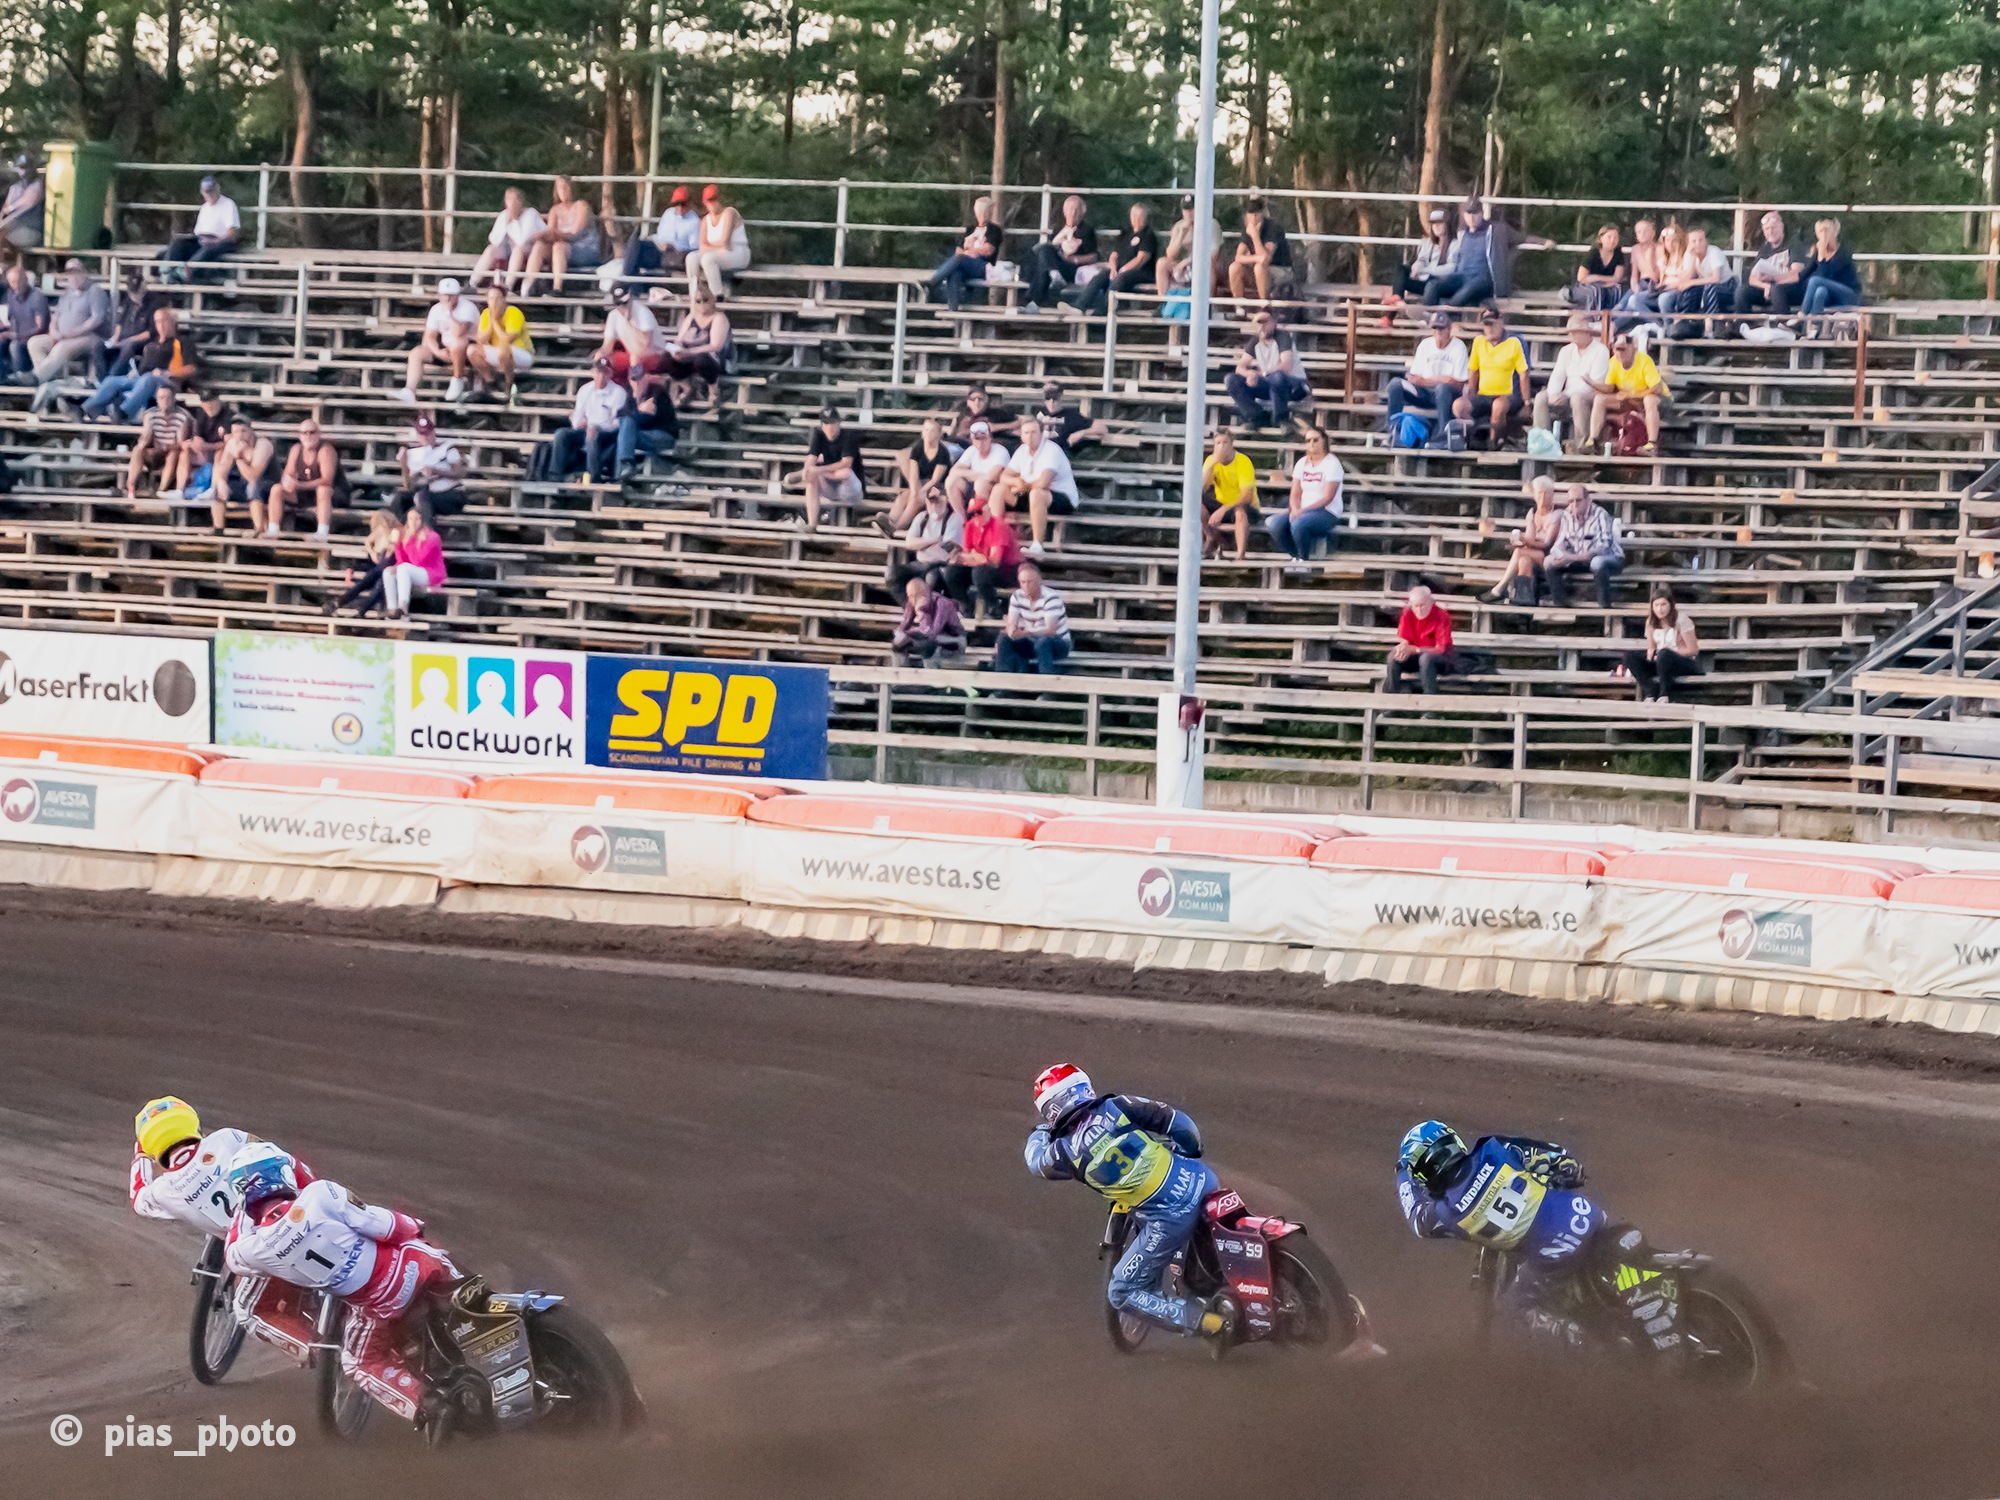 Speedway by pias_photo